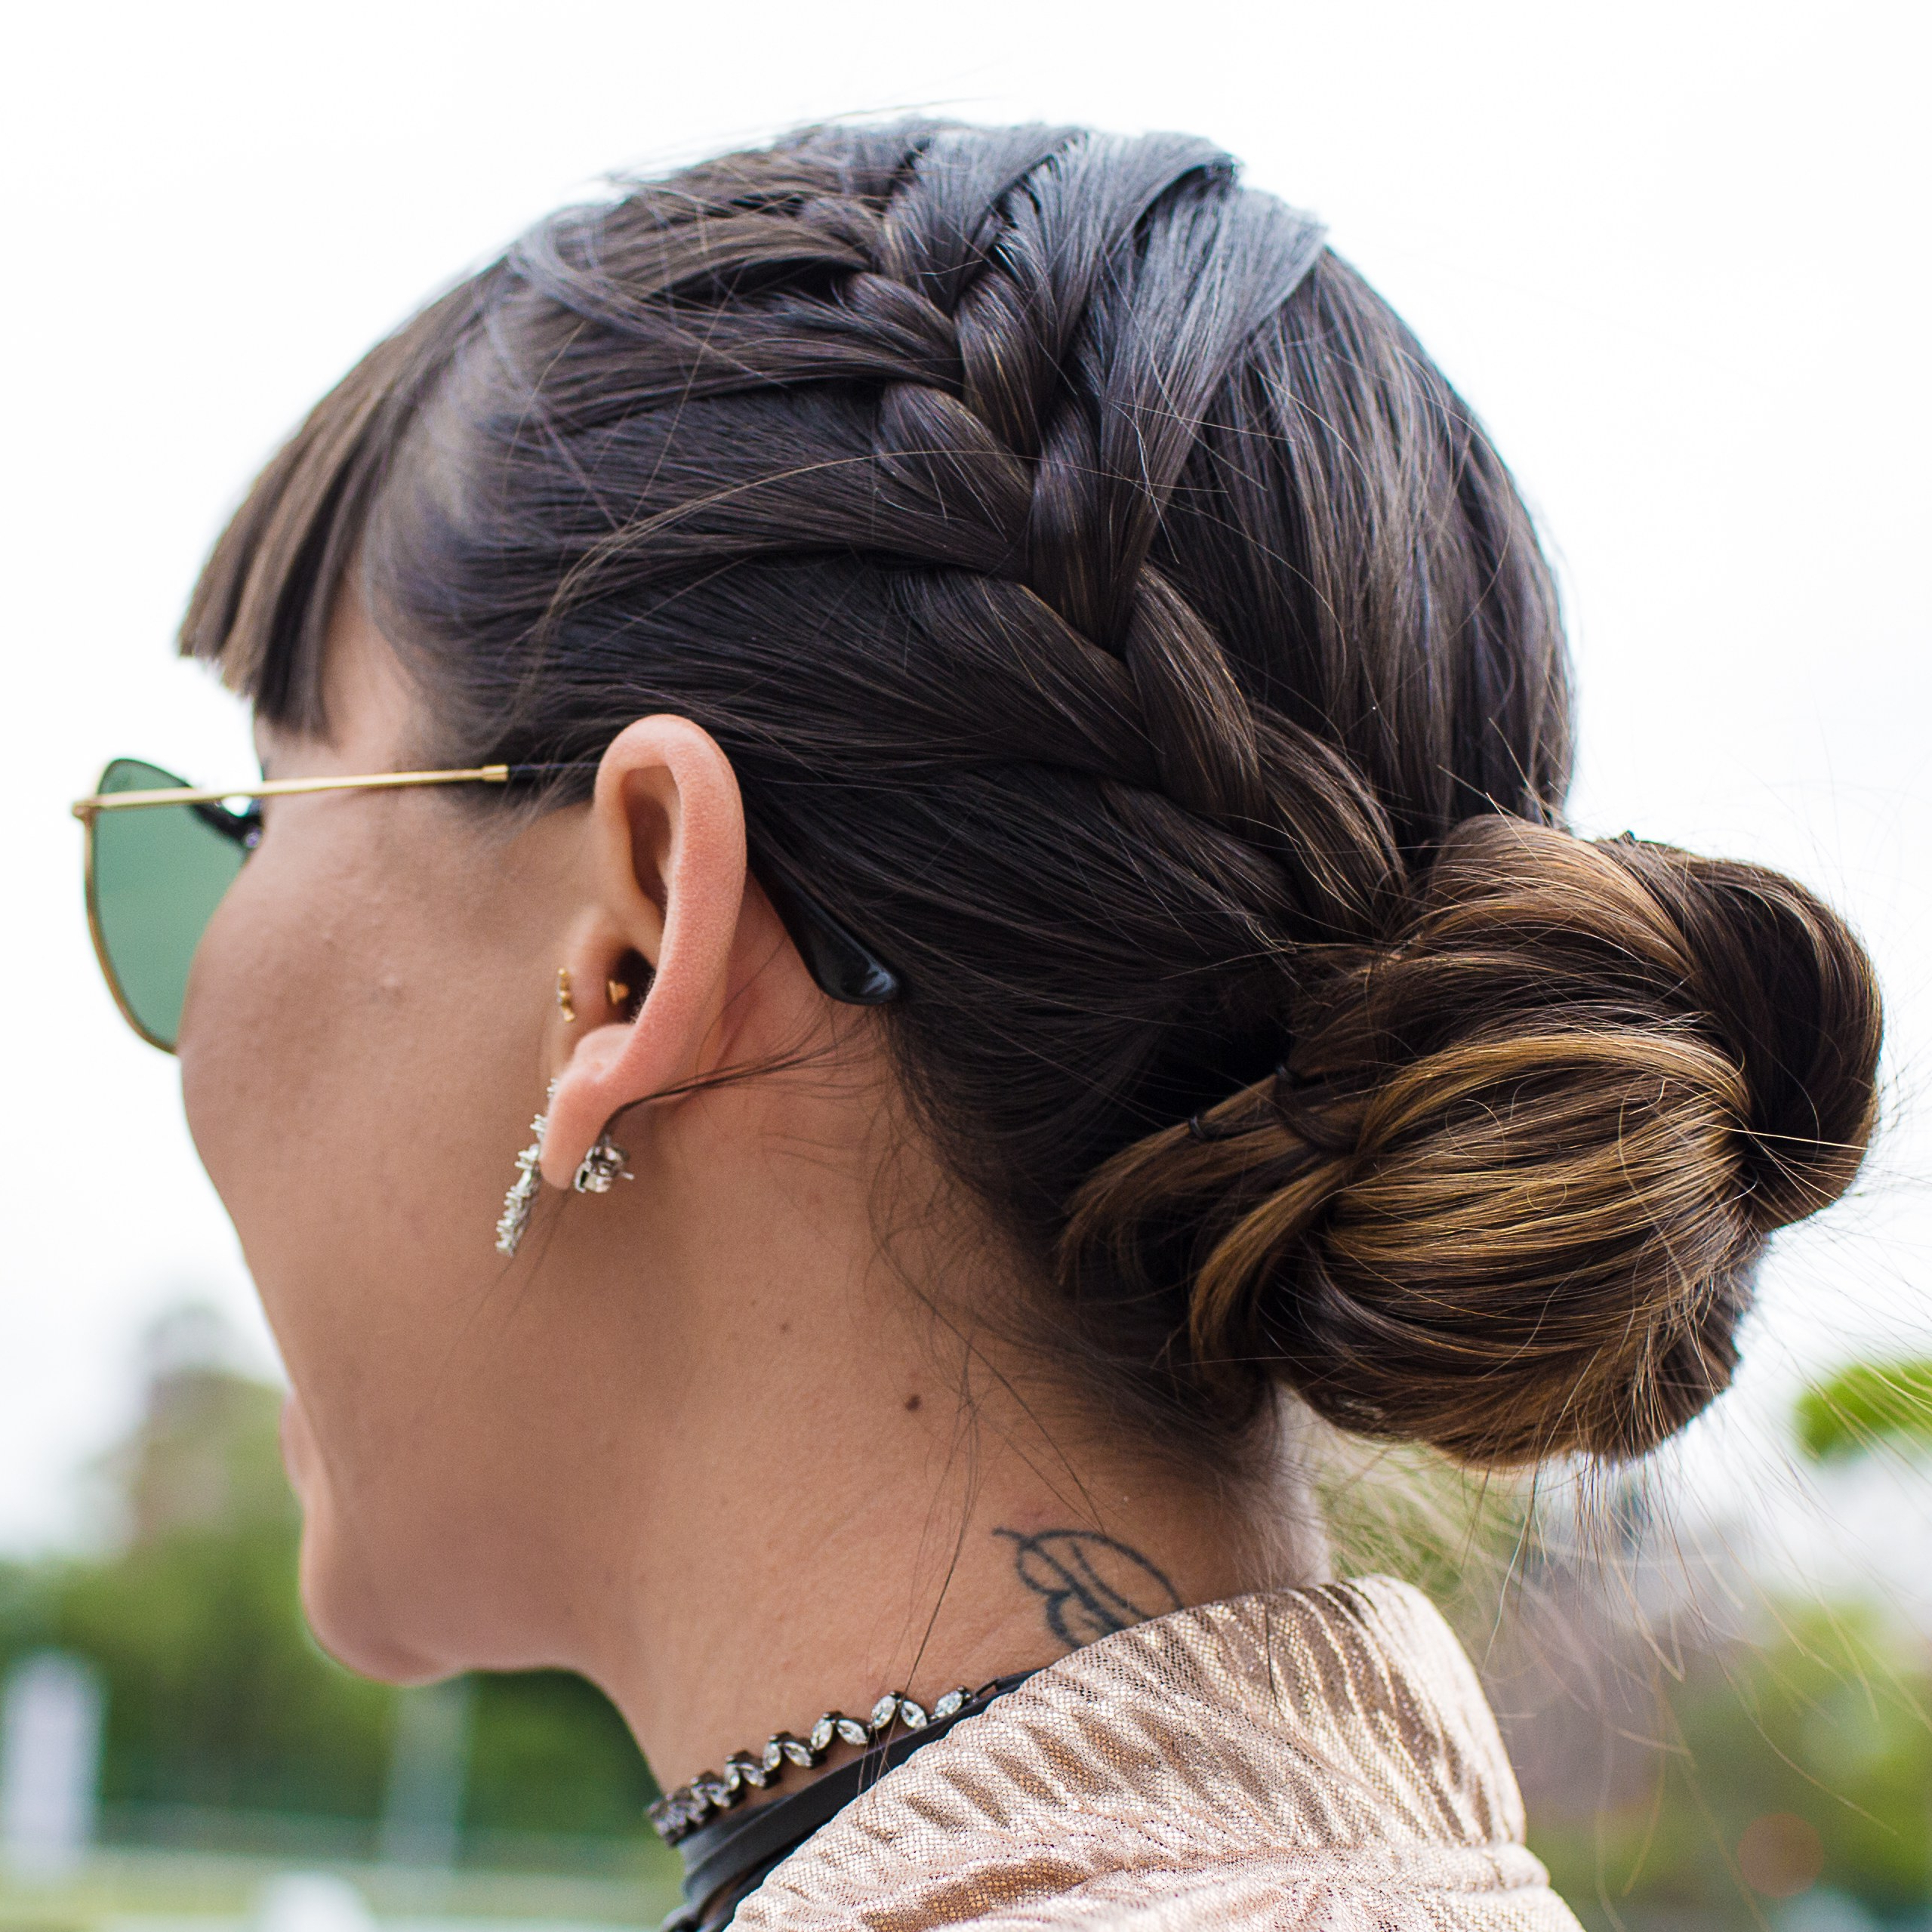 Latest Mini Braided Buns Updo Hairstyles In How To Braid Hair – 10 Tutorials You Can Do Yourself (View 12 of 20)